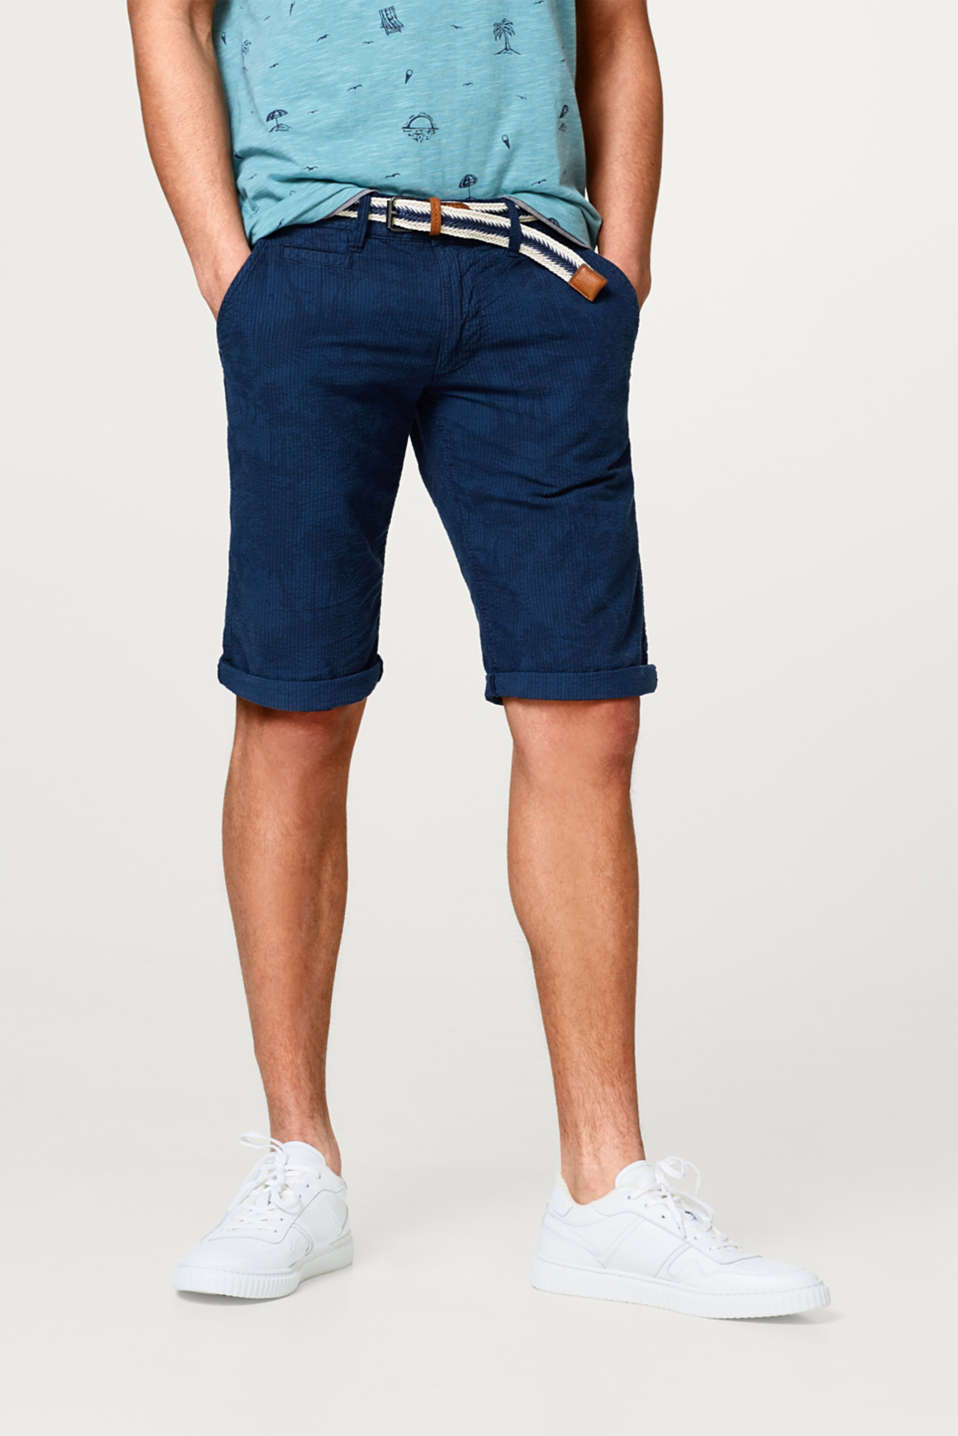 edc - Printed shorts in seersucker with a belt